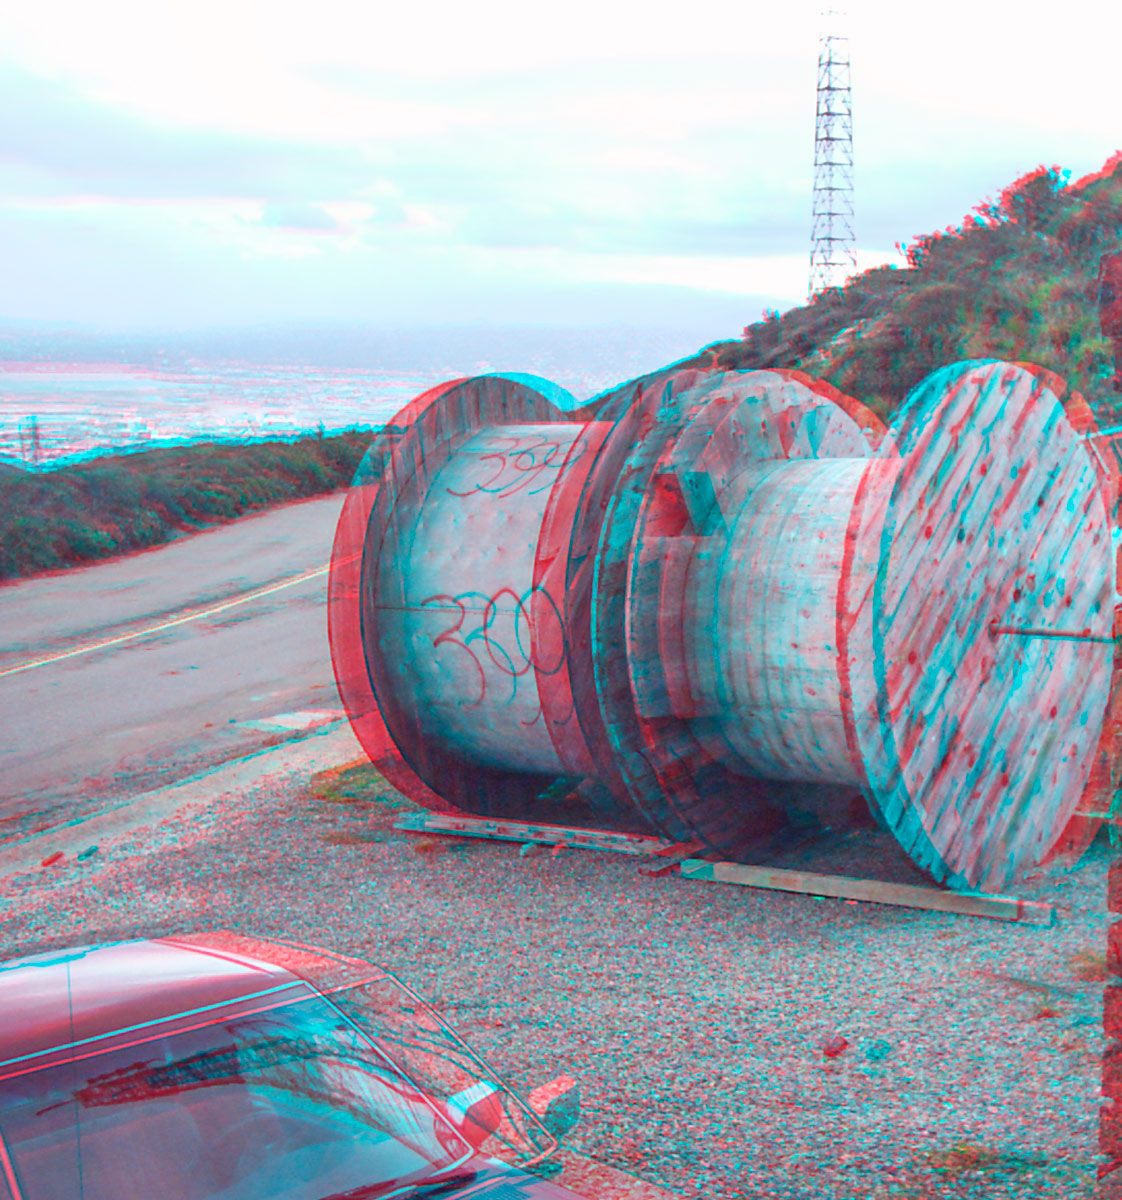 Photo: 3D Spools